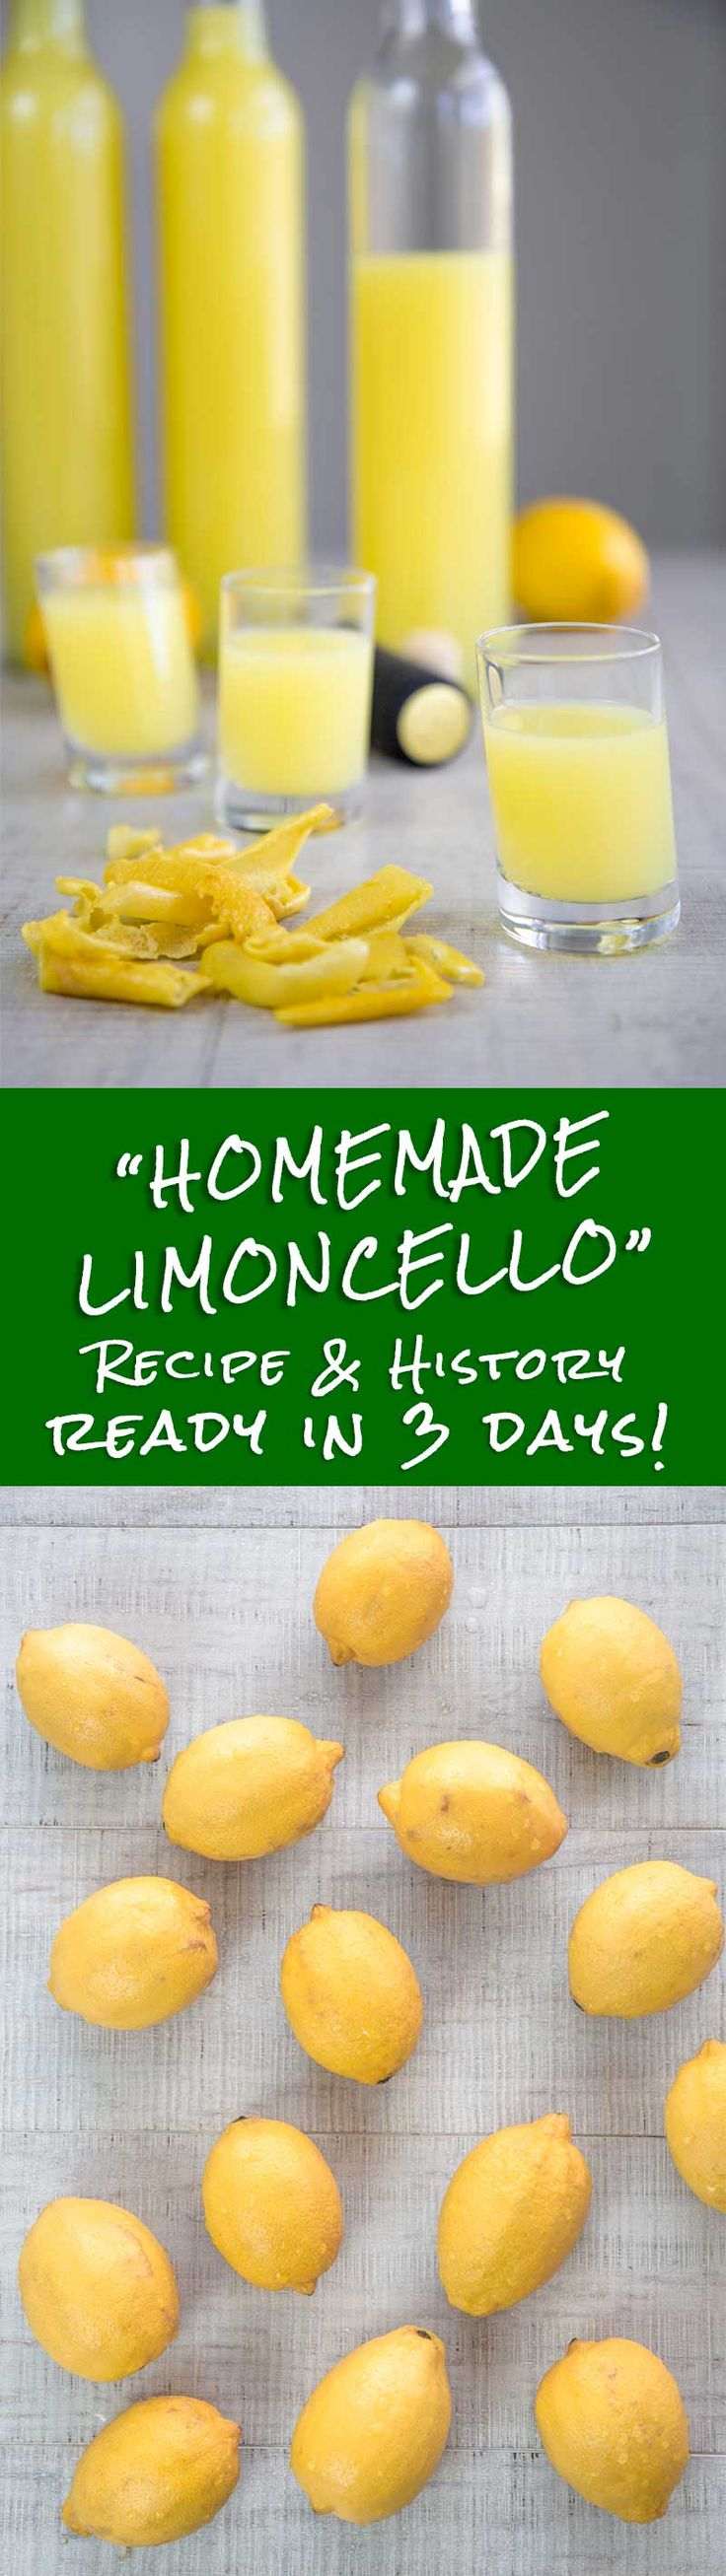 HOMEMADE LIMONCELLO ITALIAN RECIPE AND HISTORY - ready in 3 days! - Homemade Limoncello is a recipe very easy to prepare, a must for any Italian festivity! Even if, the traditional method needs a long